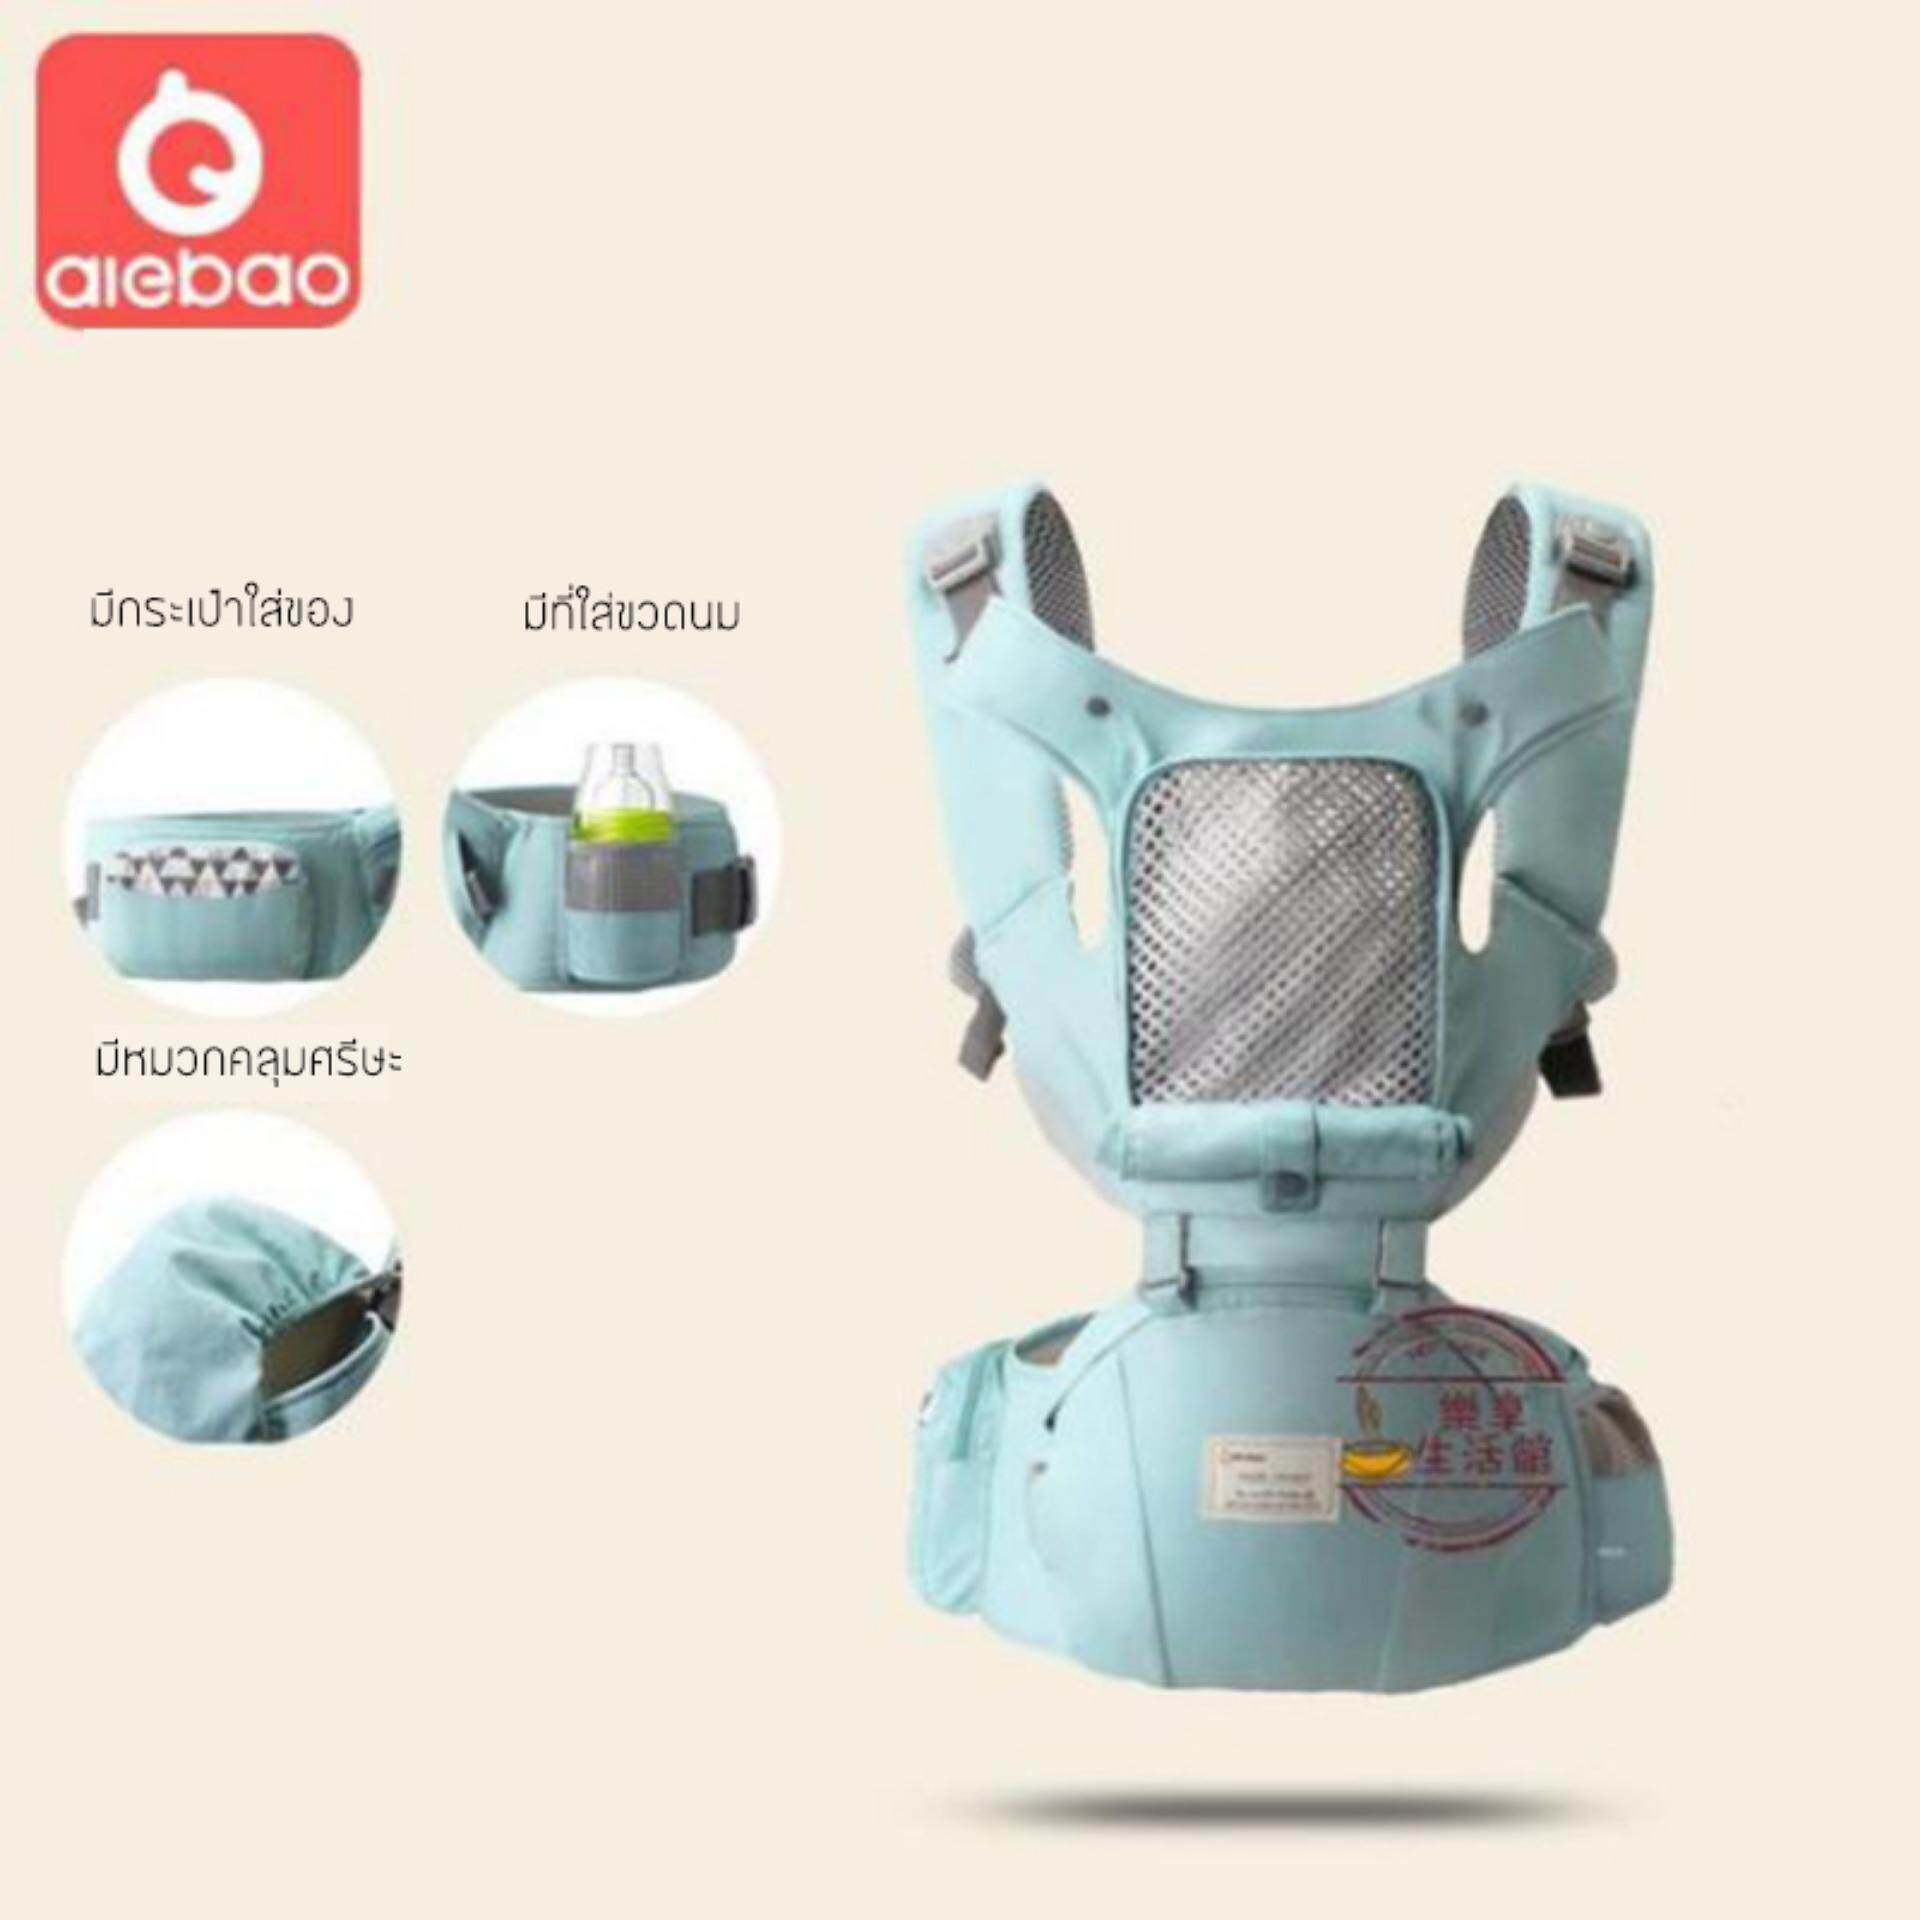 Baby boo เป้อุ้มเด็ก รุ่นล่าสุด (aiebao) Hip Seat 3 in 1 สามารถนั่งและนอนได้ พาสเทล(Pastel) สะพายหน้าและสะพายหลังได้ รุ่น:B21